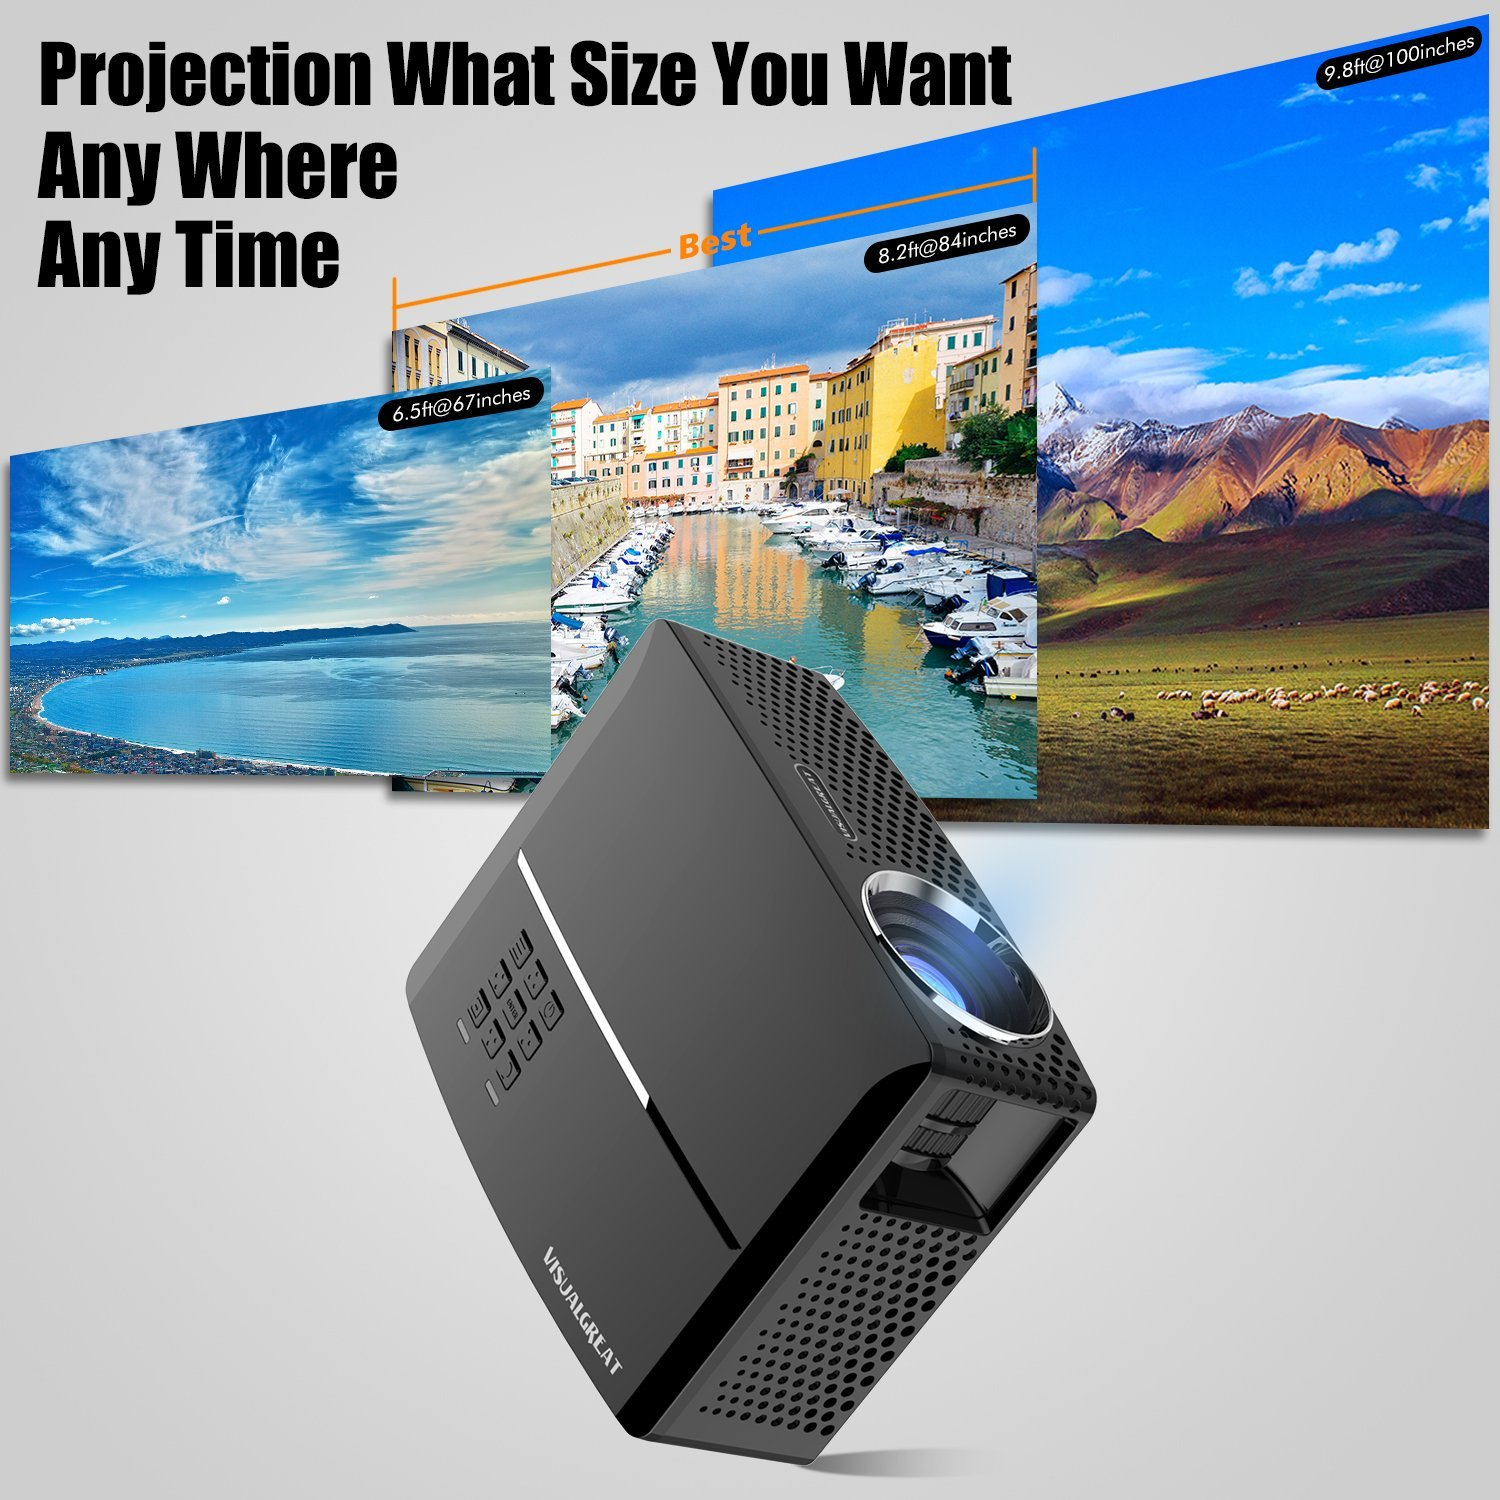 GP80 Mini Projector 1800 Lumens LED Full Color 1080P Video Media HDMI VGA Home Theater Projector